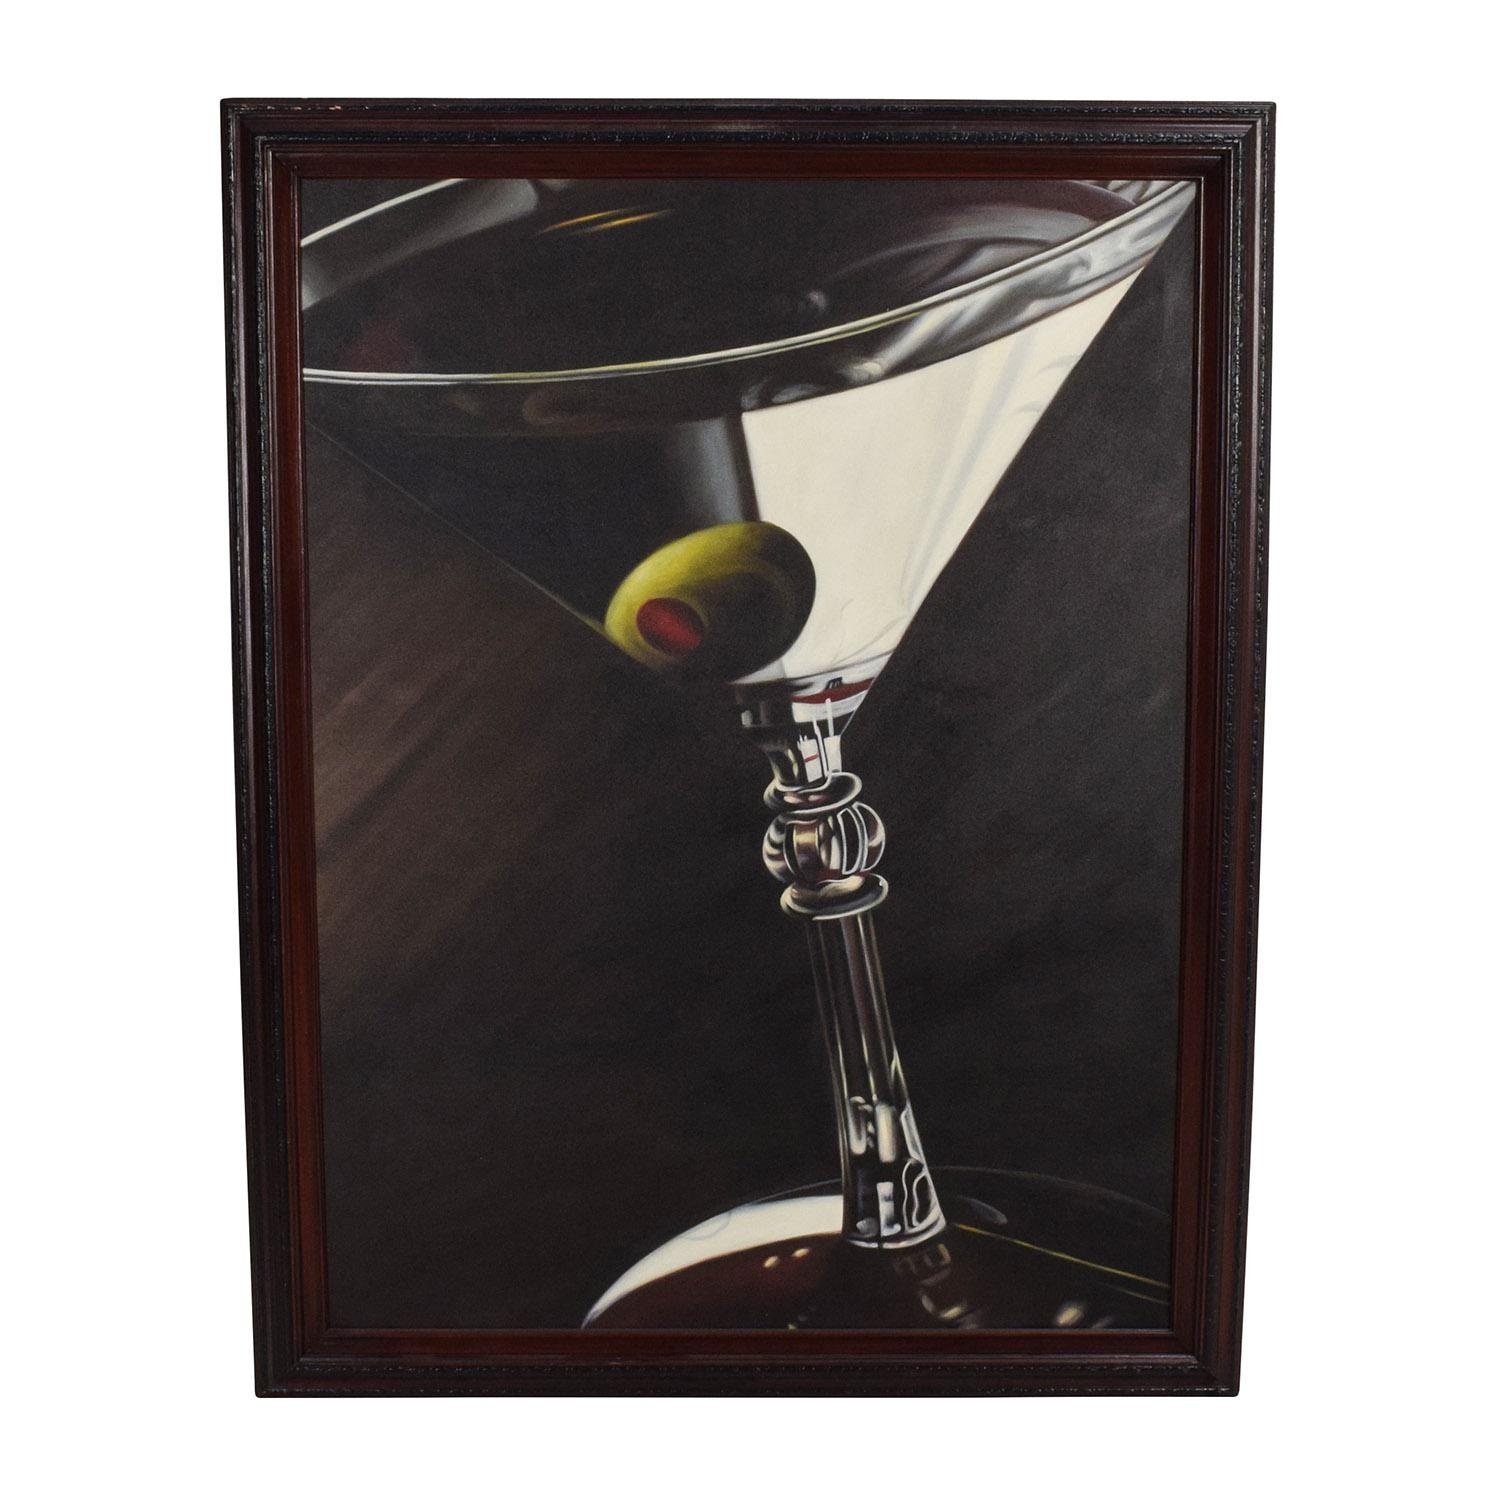 54% Off - French Vineyard Metal Wall Hanging / Decor with Martini Metal Wall Art